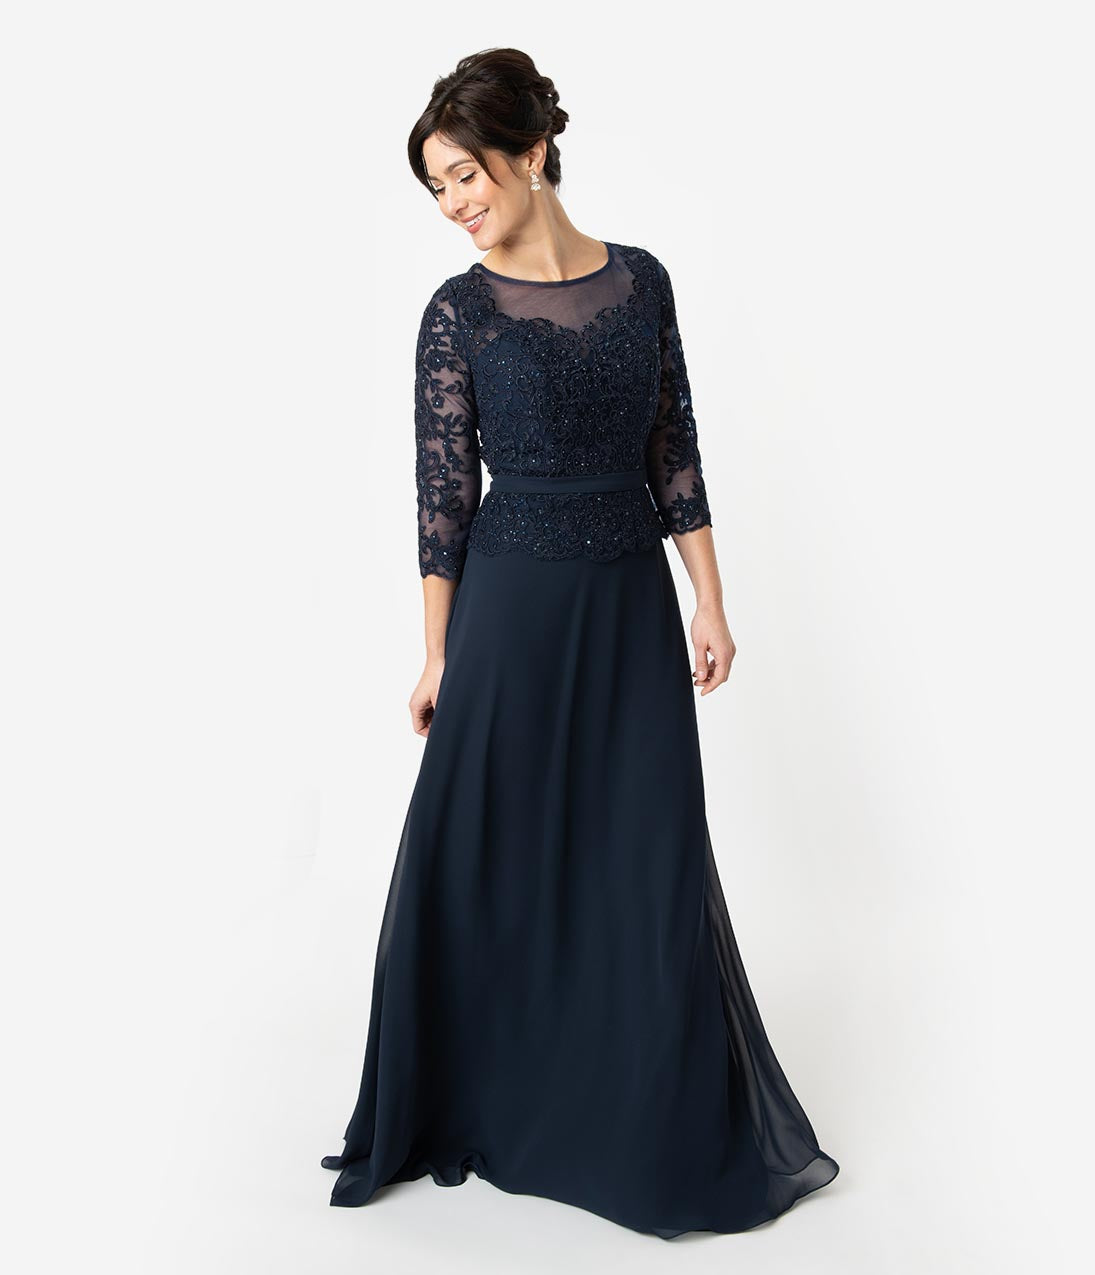 1940s Formal Dresses, Evening Gowns History Navy Blue Embellished Chiffon Sleeved Peplum Modest Long Dress $172.00 AT vintagedancer.com